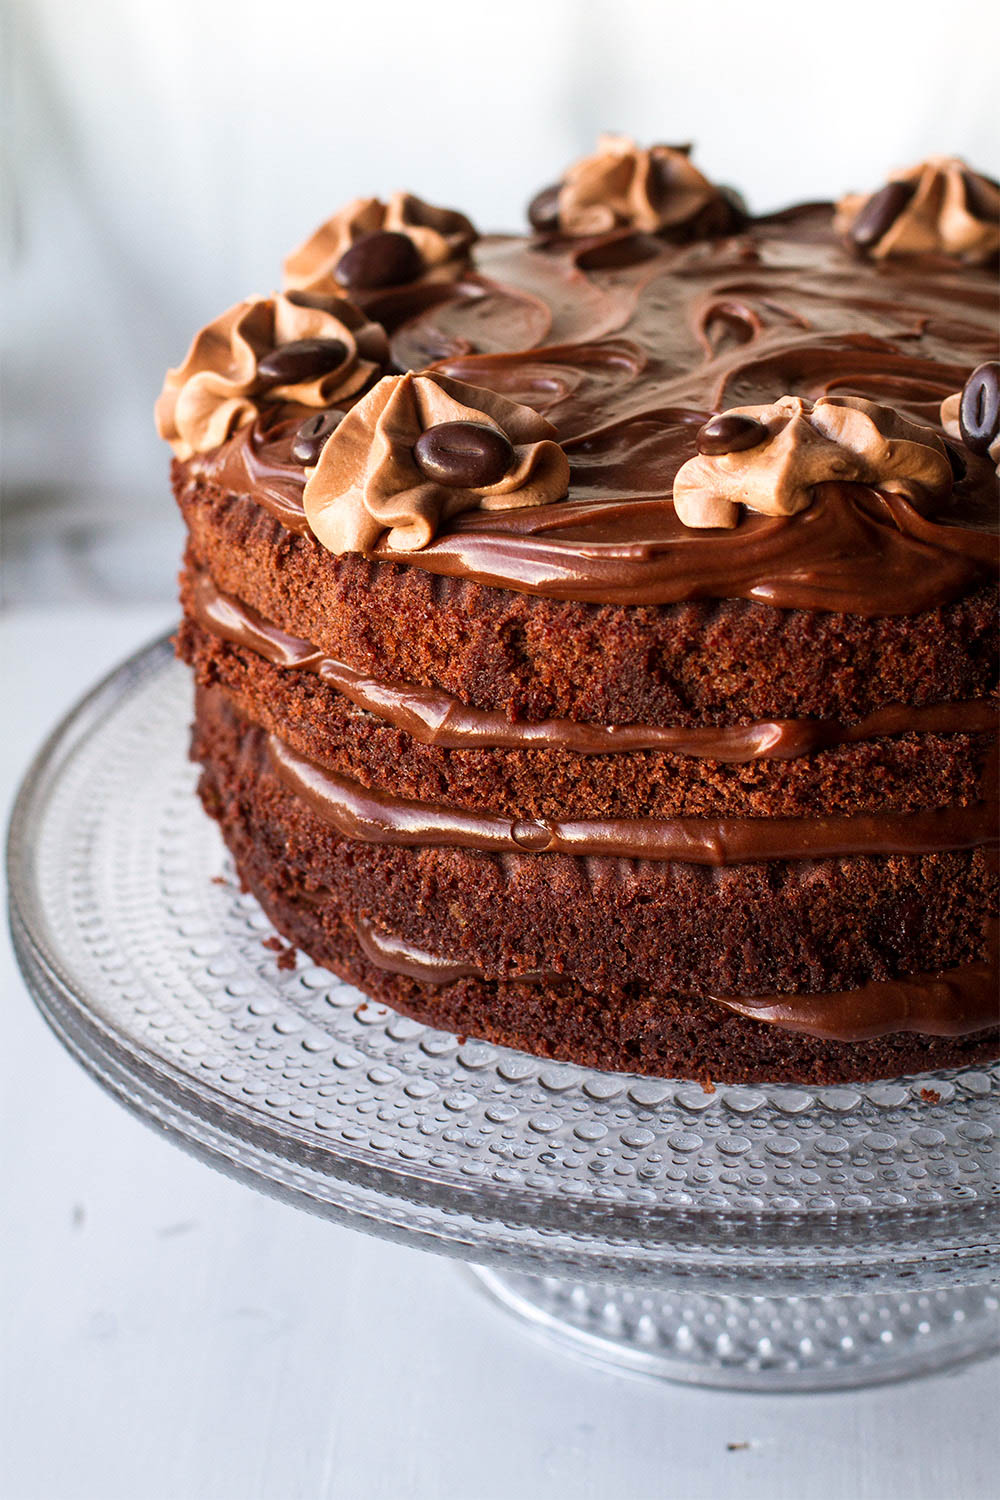 Layer chocolate cake with buttercream frosting.